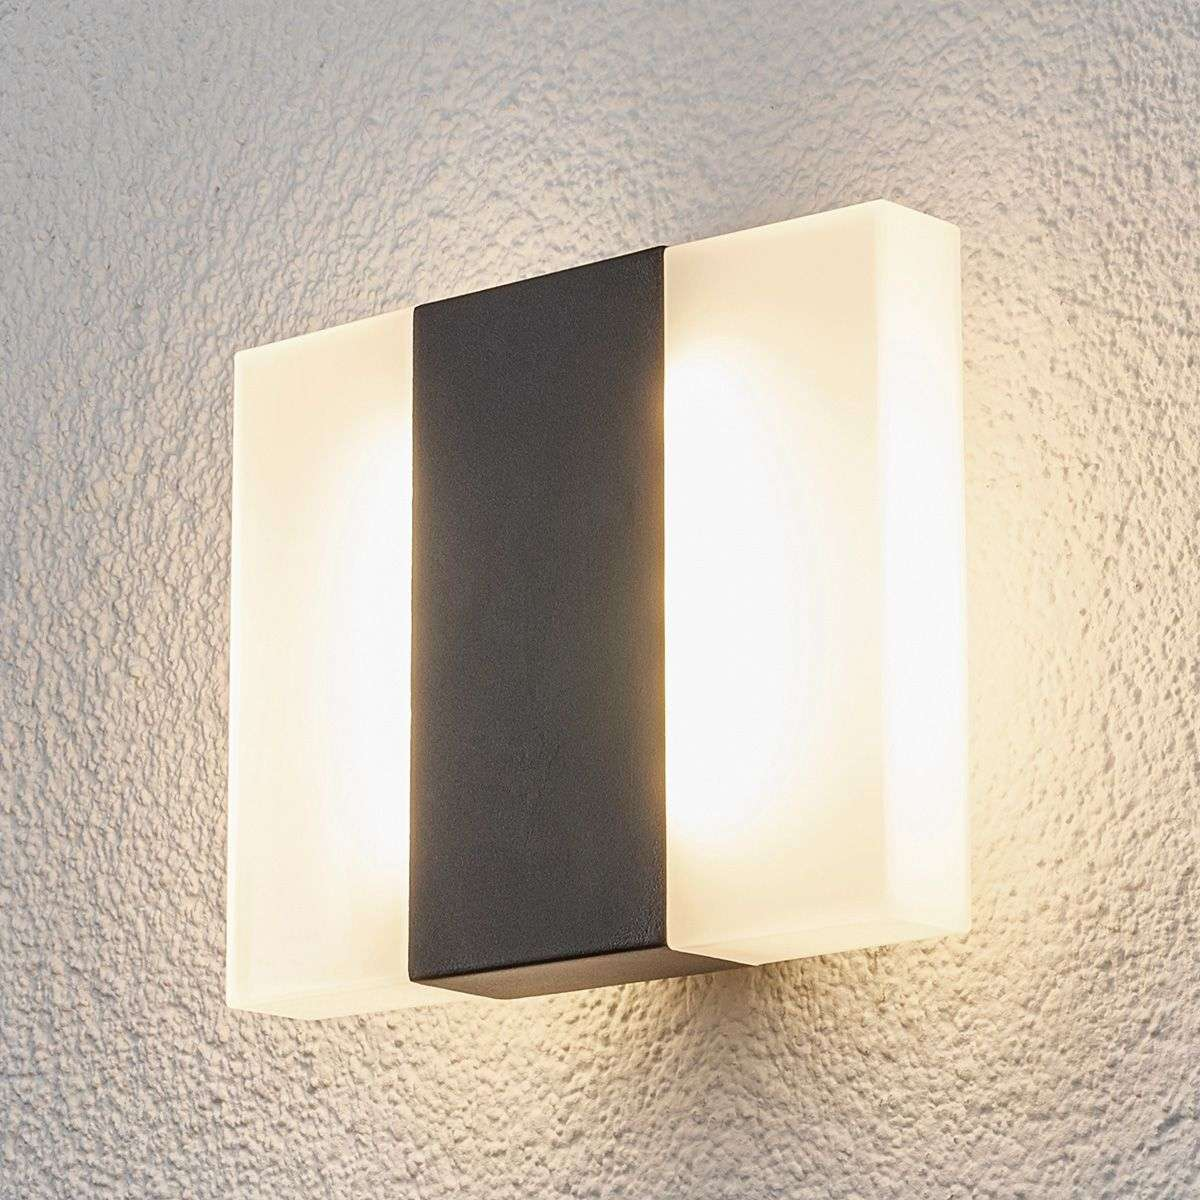 All Square Wall Lights : Borje - LED outdoor wall light in a square shape Lights.co.uk